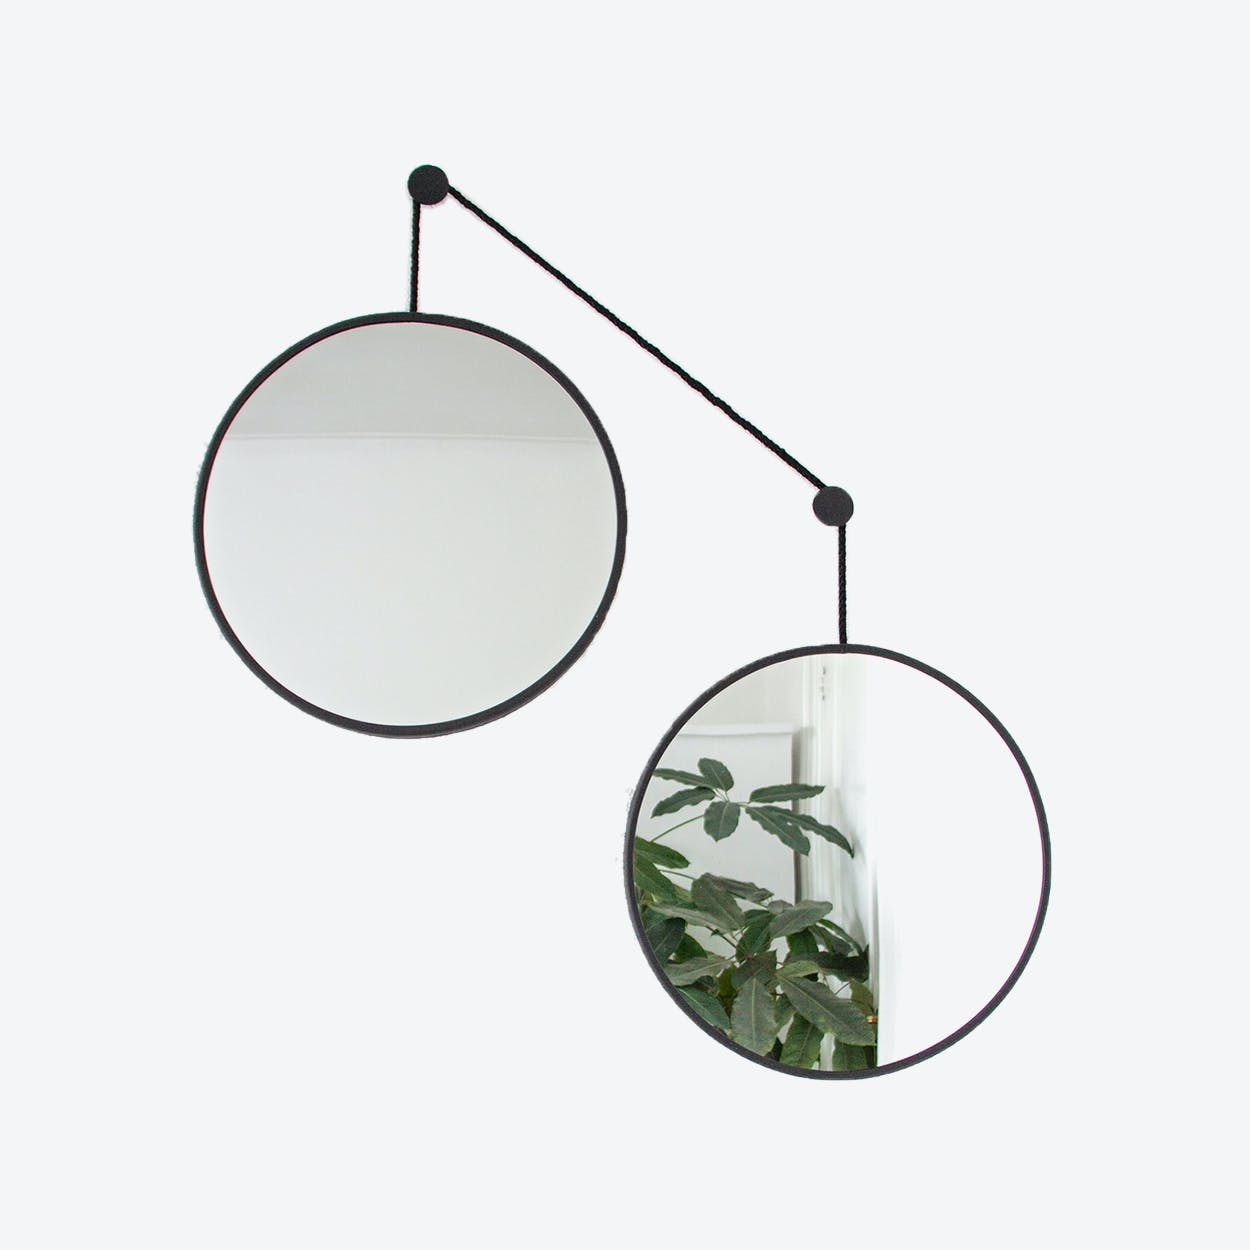 Mirror set TWINS in Black with Black Cord